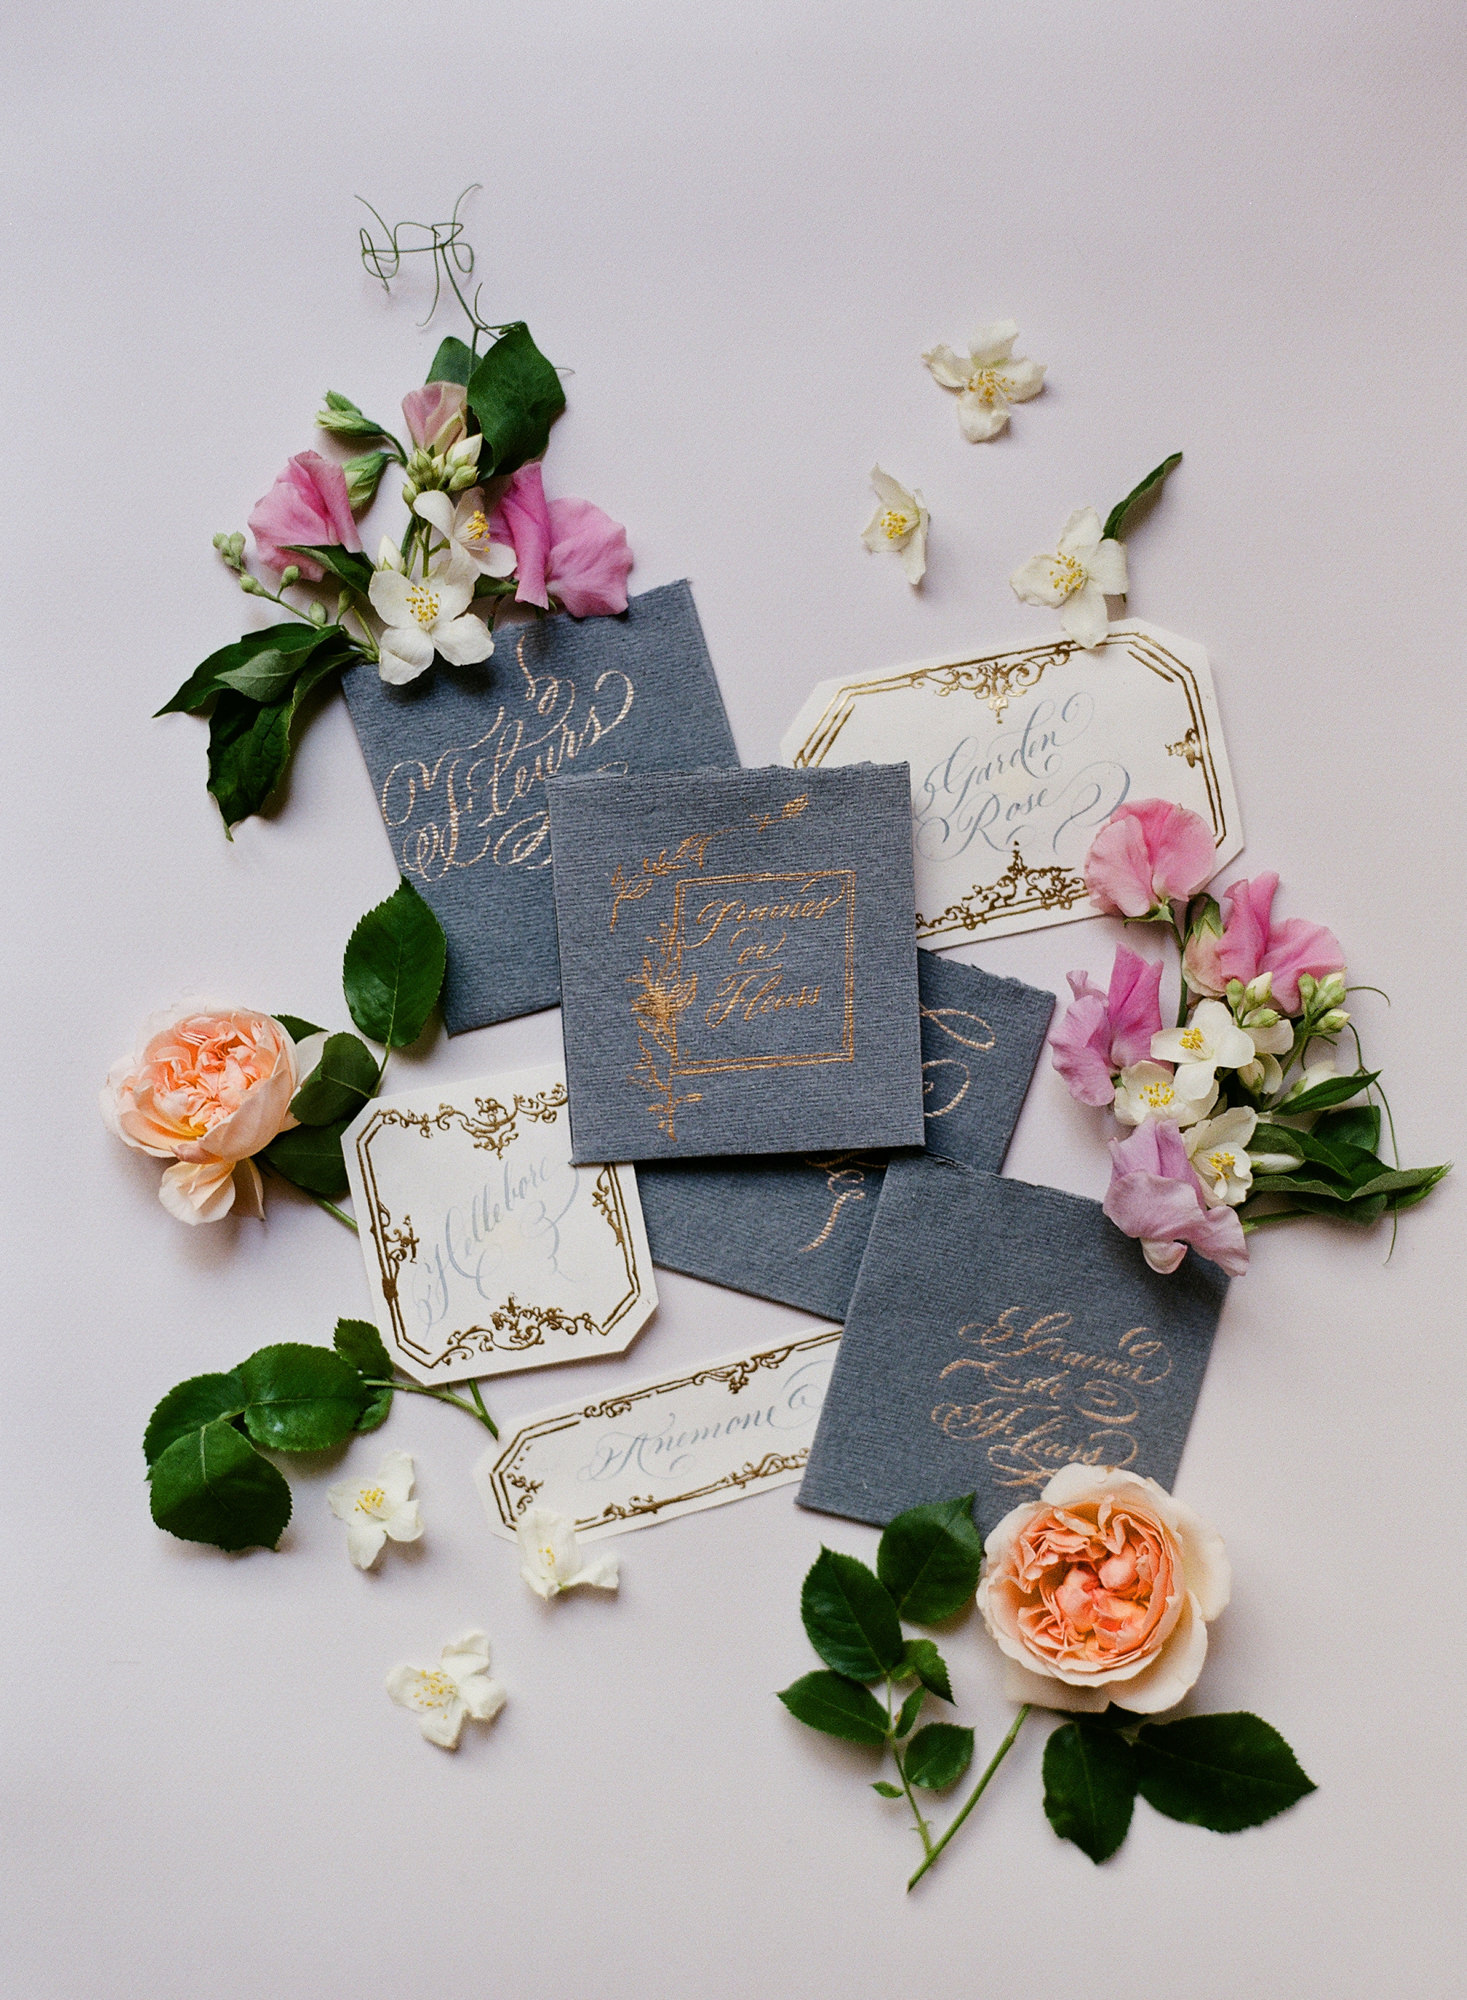 Handmade paper invitations with gold calligraphy and grey envelopes - photo by Gianluca Adovasio Photography